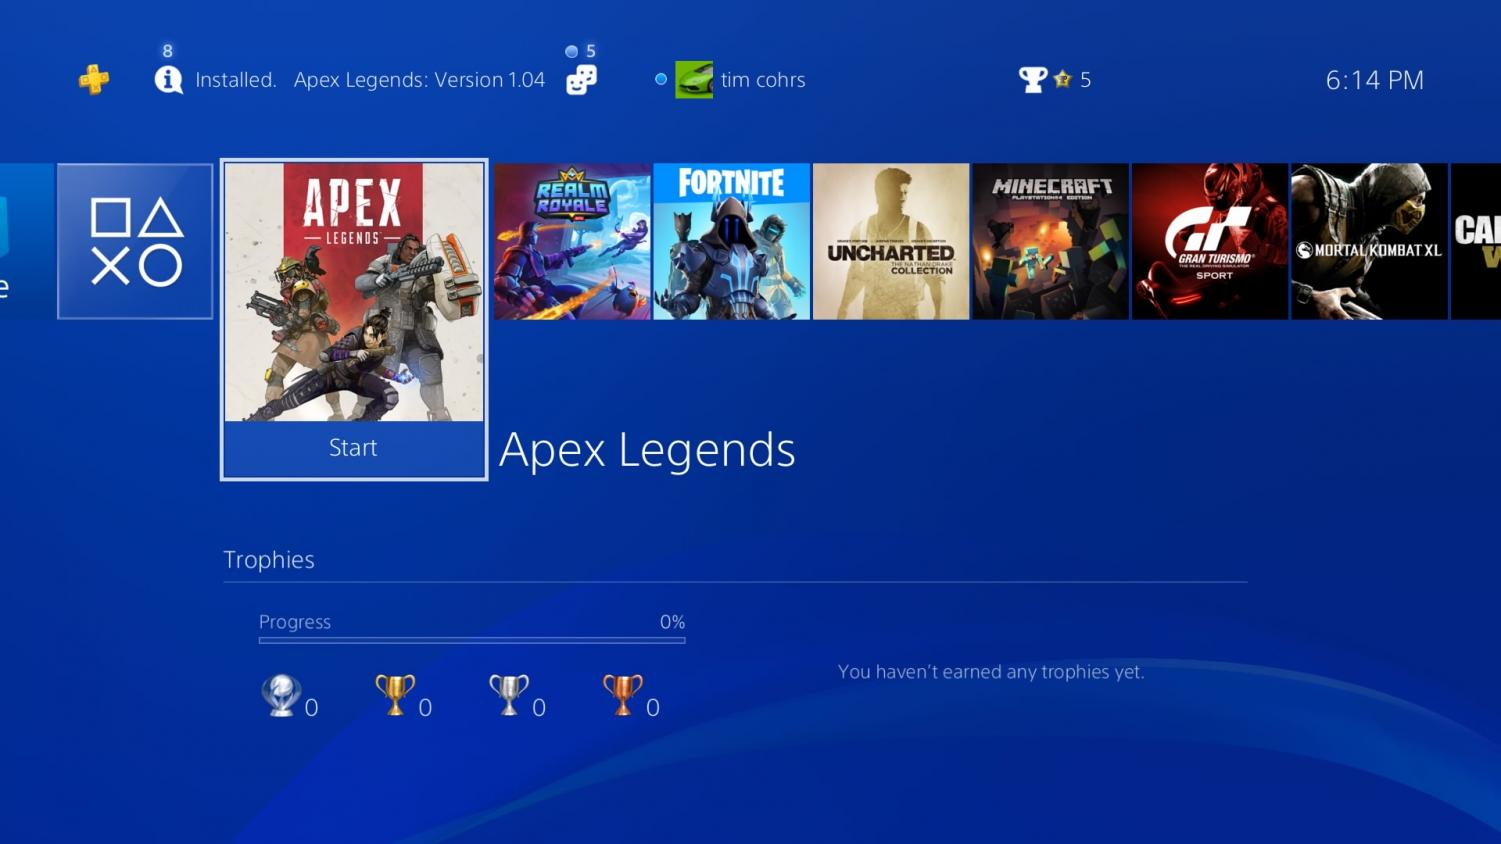 Apex Legends, released Feb. 8, is already gaining popularity with avid gamers due to it's high standard of graphics and by the fact that it is free.